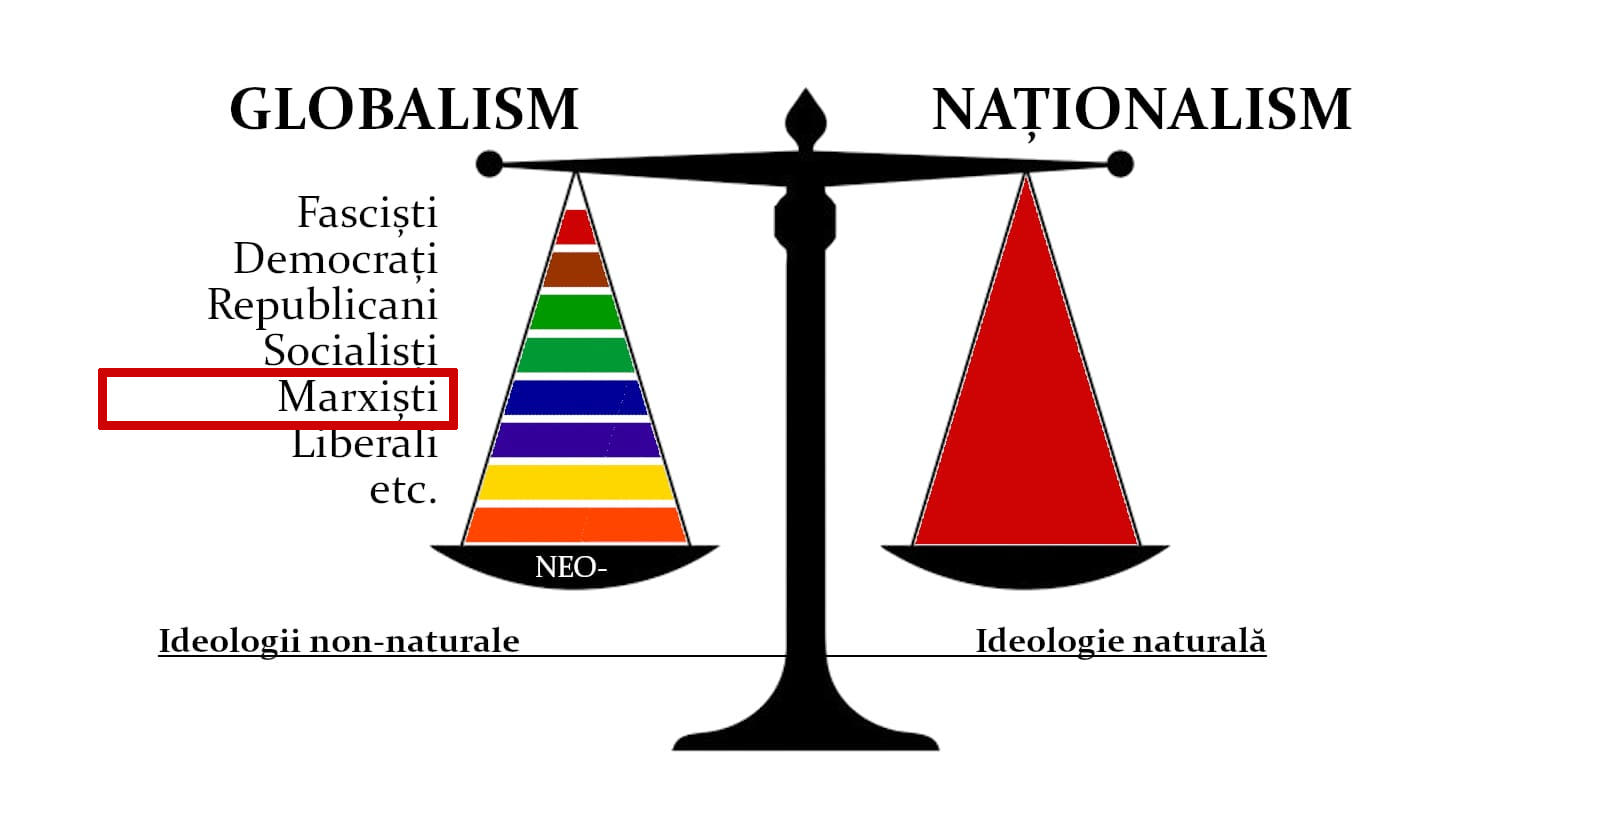 https://ziarul.romania-rationala.ro/control/articole/articole/nationalism-globalism-marxist.jpg